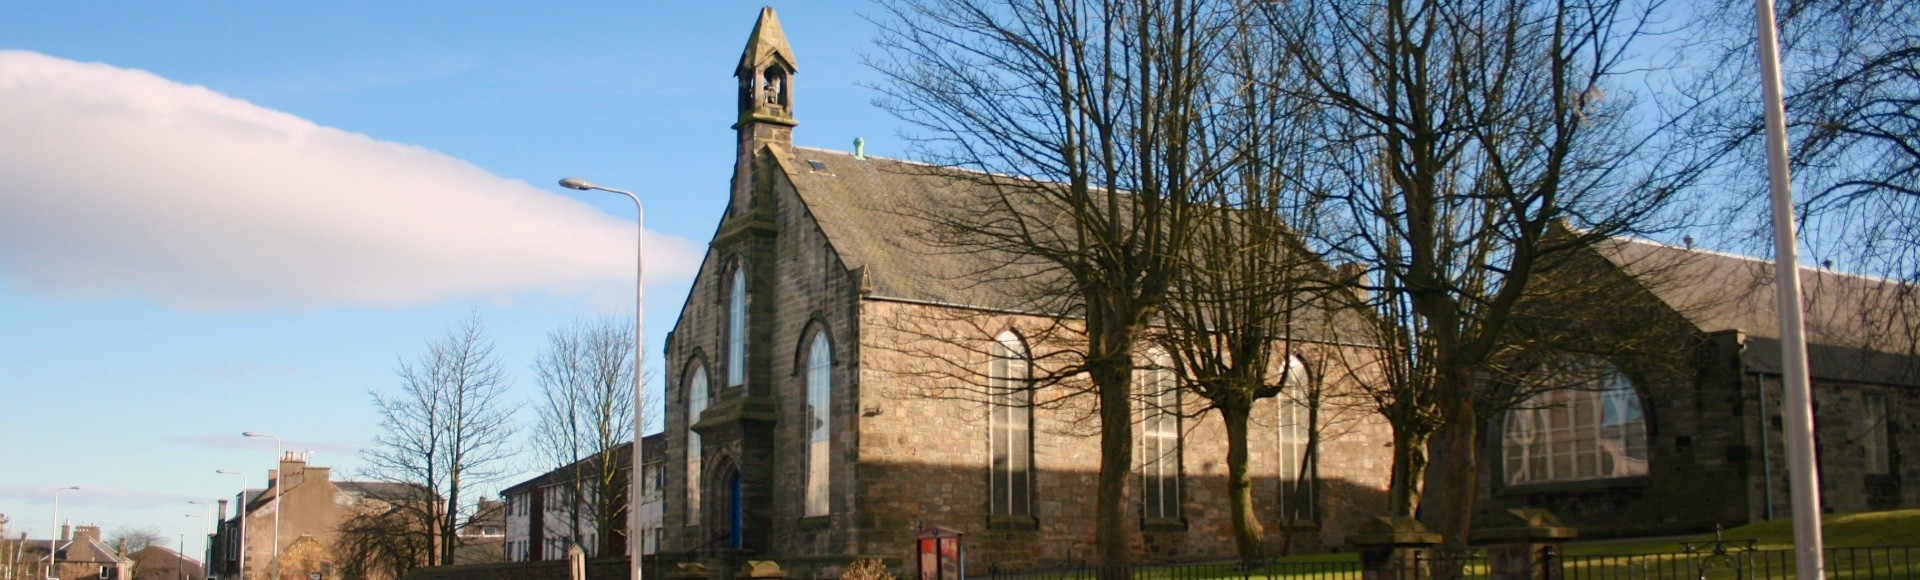 Lochgelly and Benarty : St. Serf's